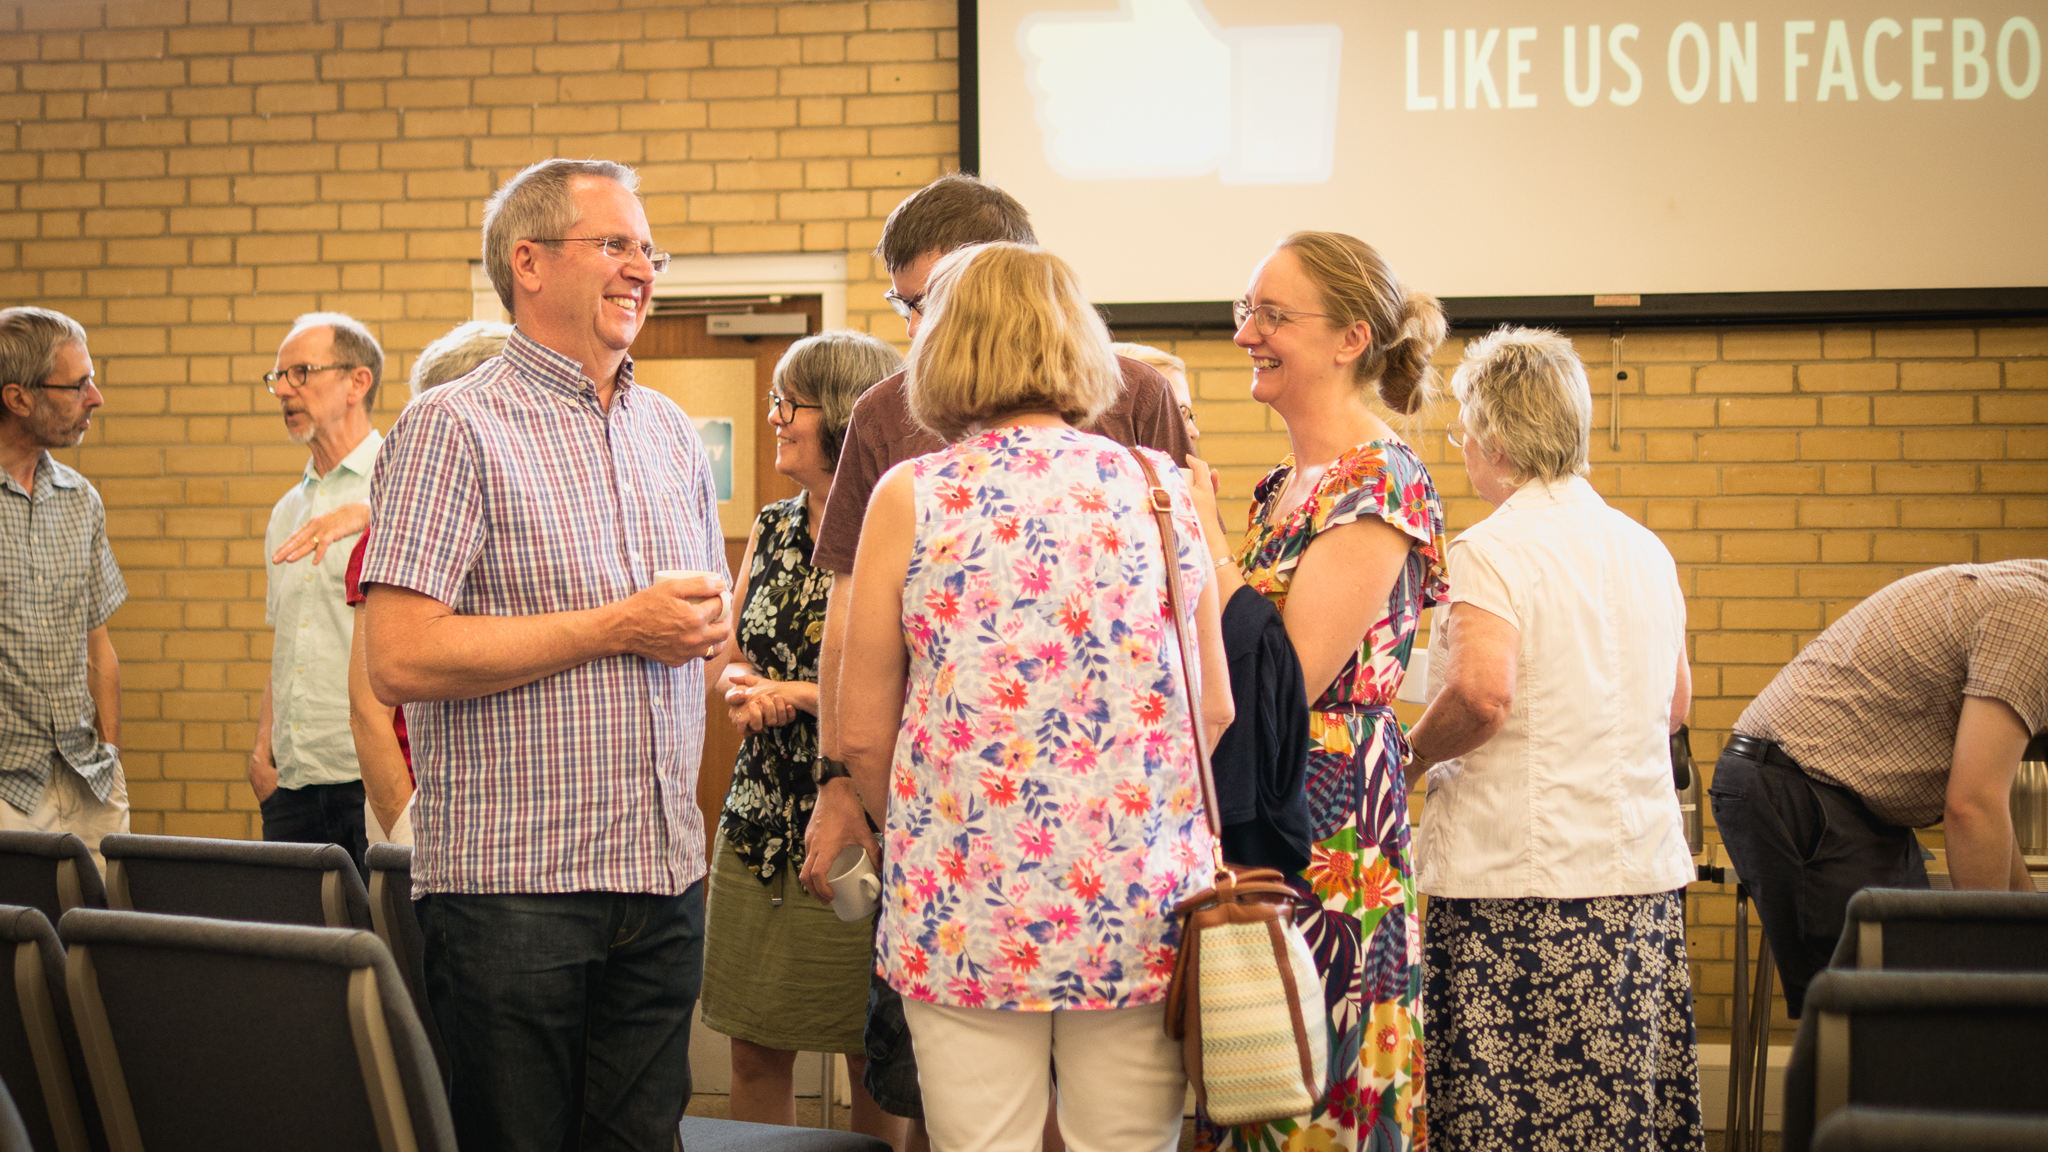 Beeston Free Church – Glorifying God through lives transformed by